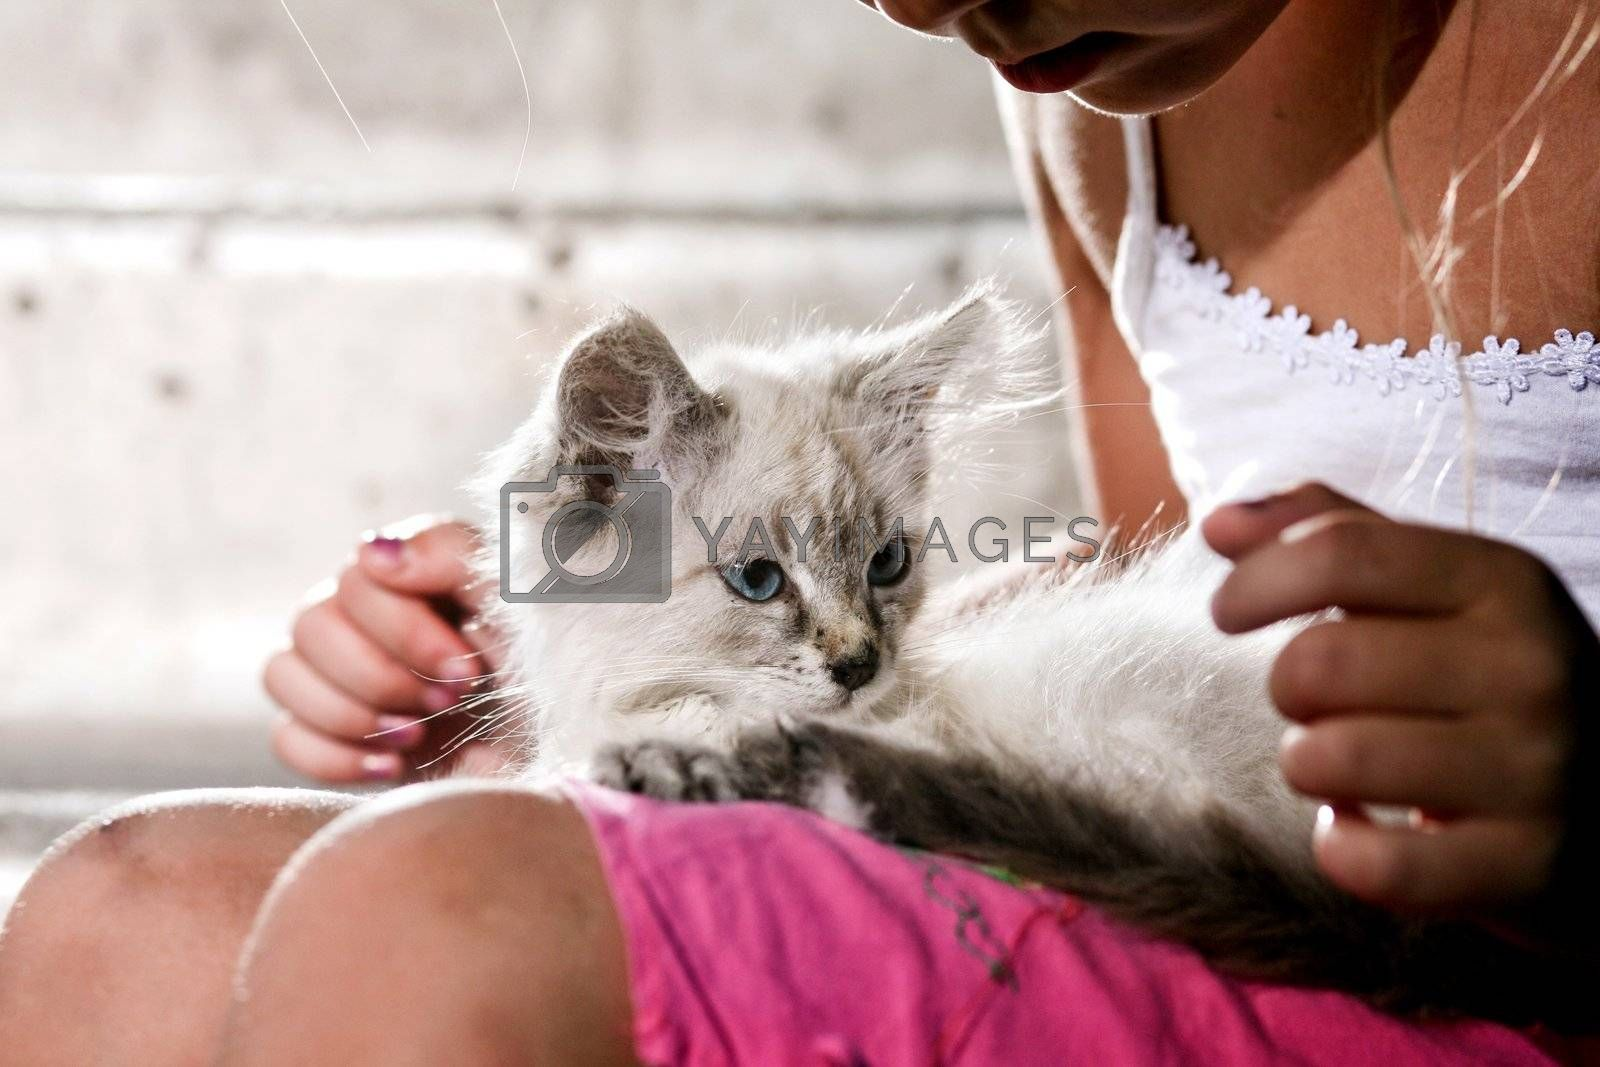 An image a kitten in girls arms